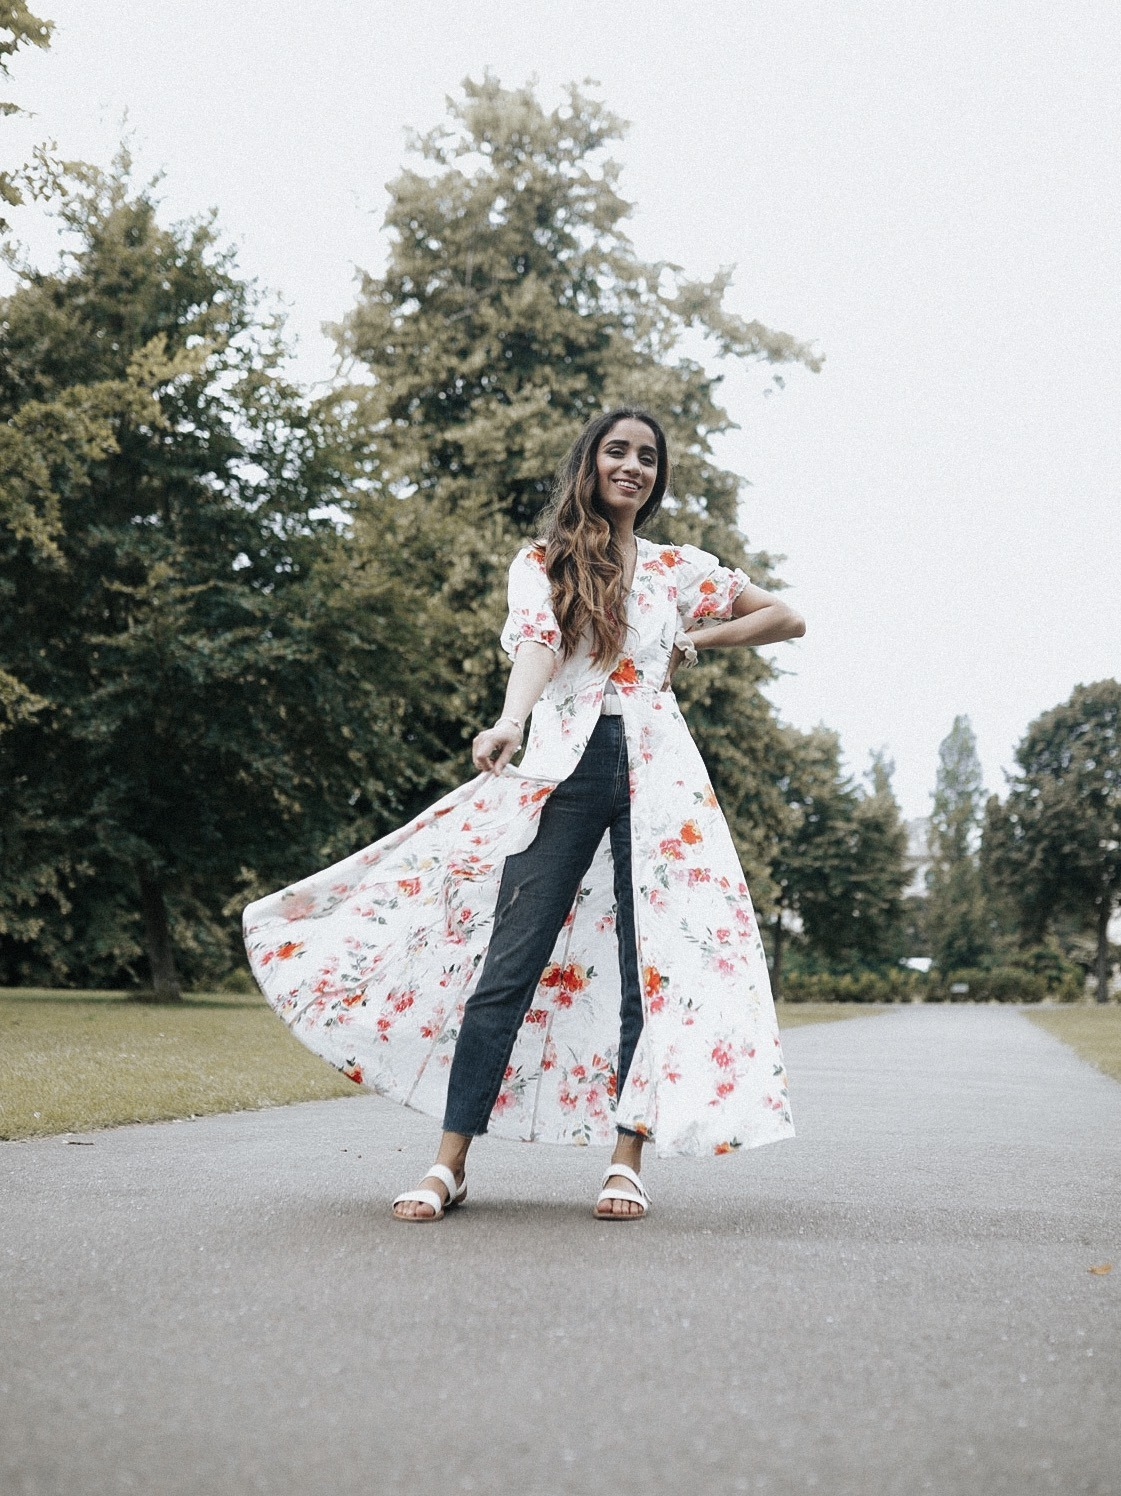 Summer Dress 2019 Roundups Part 1 Faiza Inam Sincerelyhumble maxi dresses button dress Zara 1